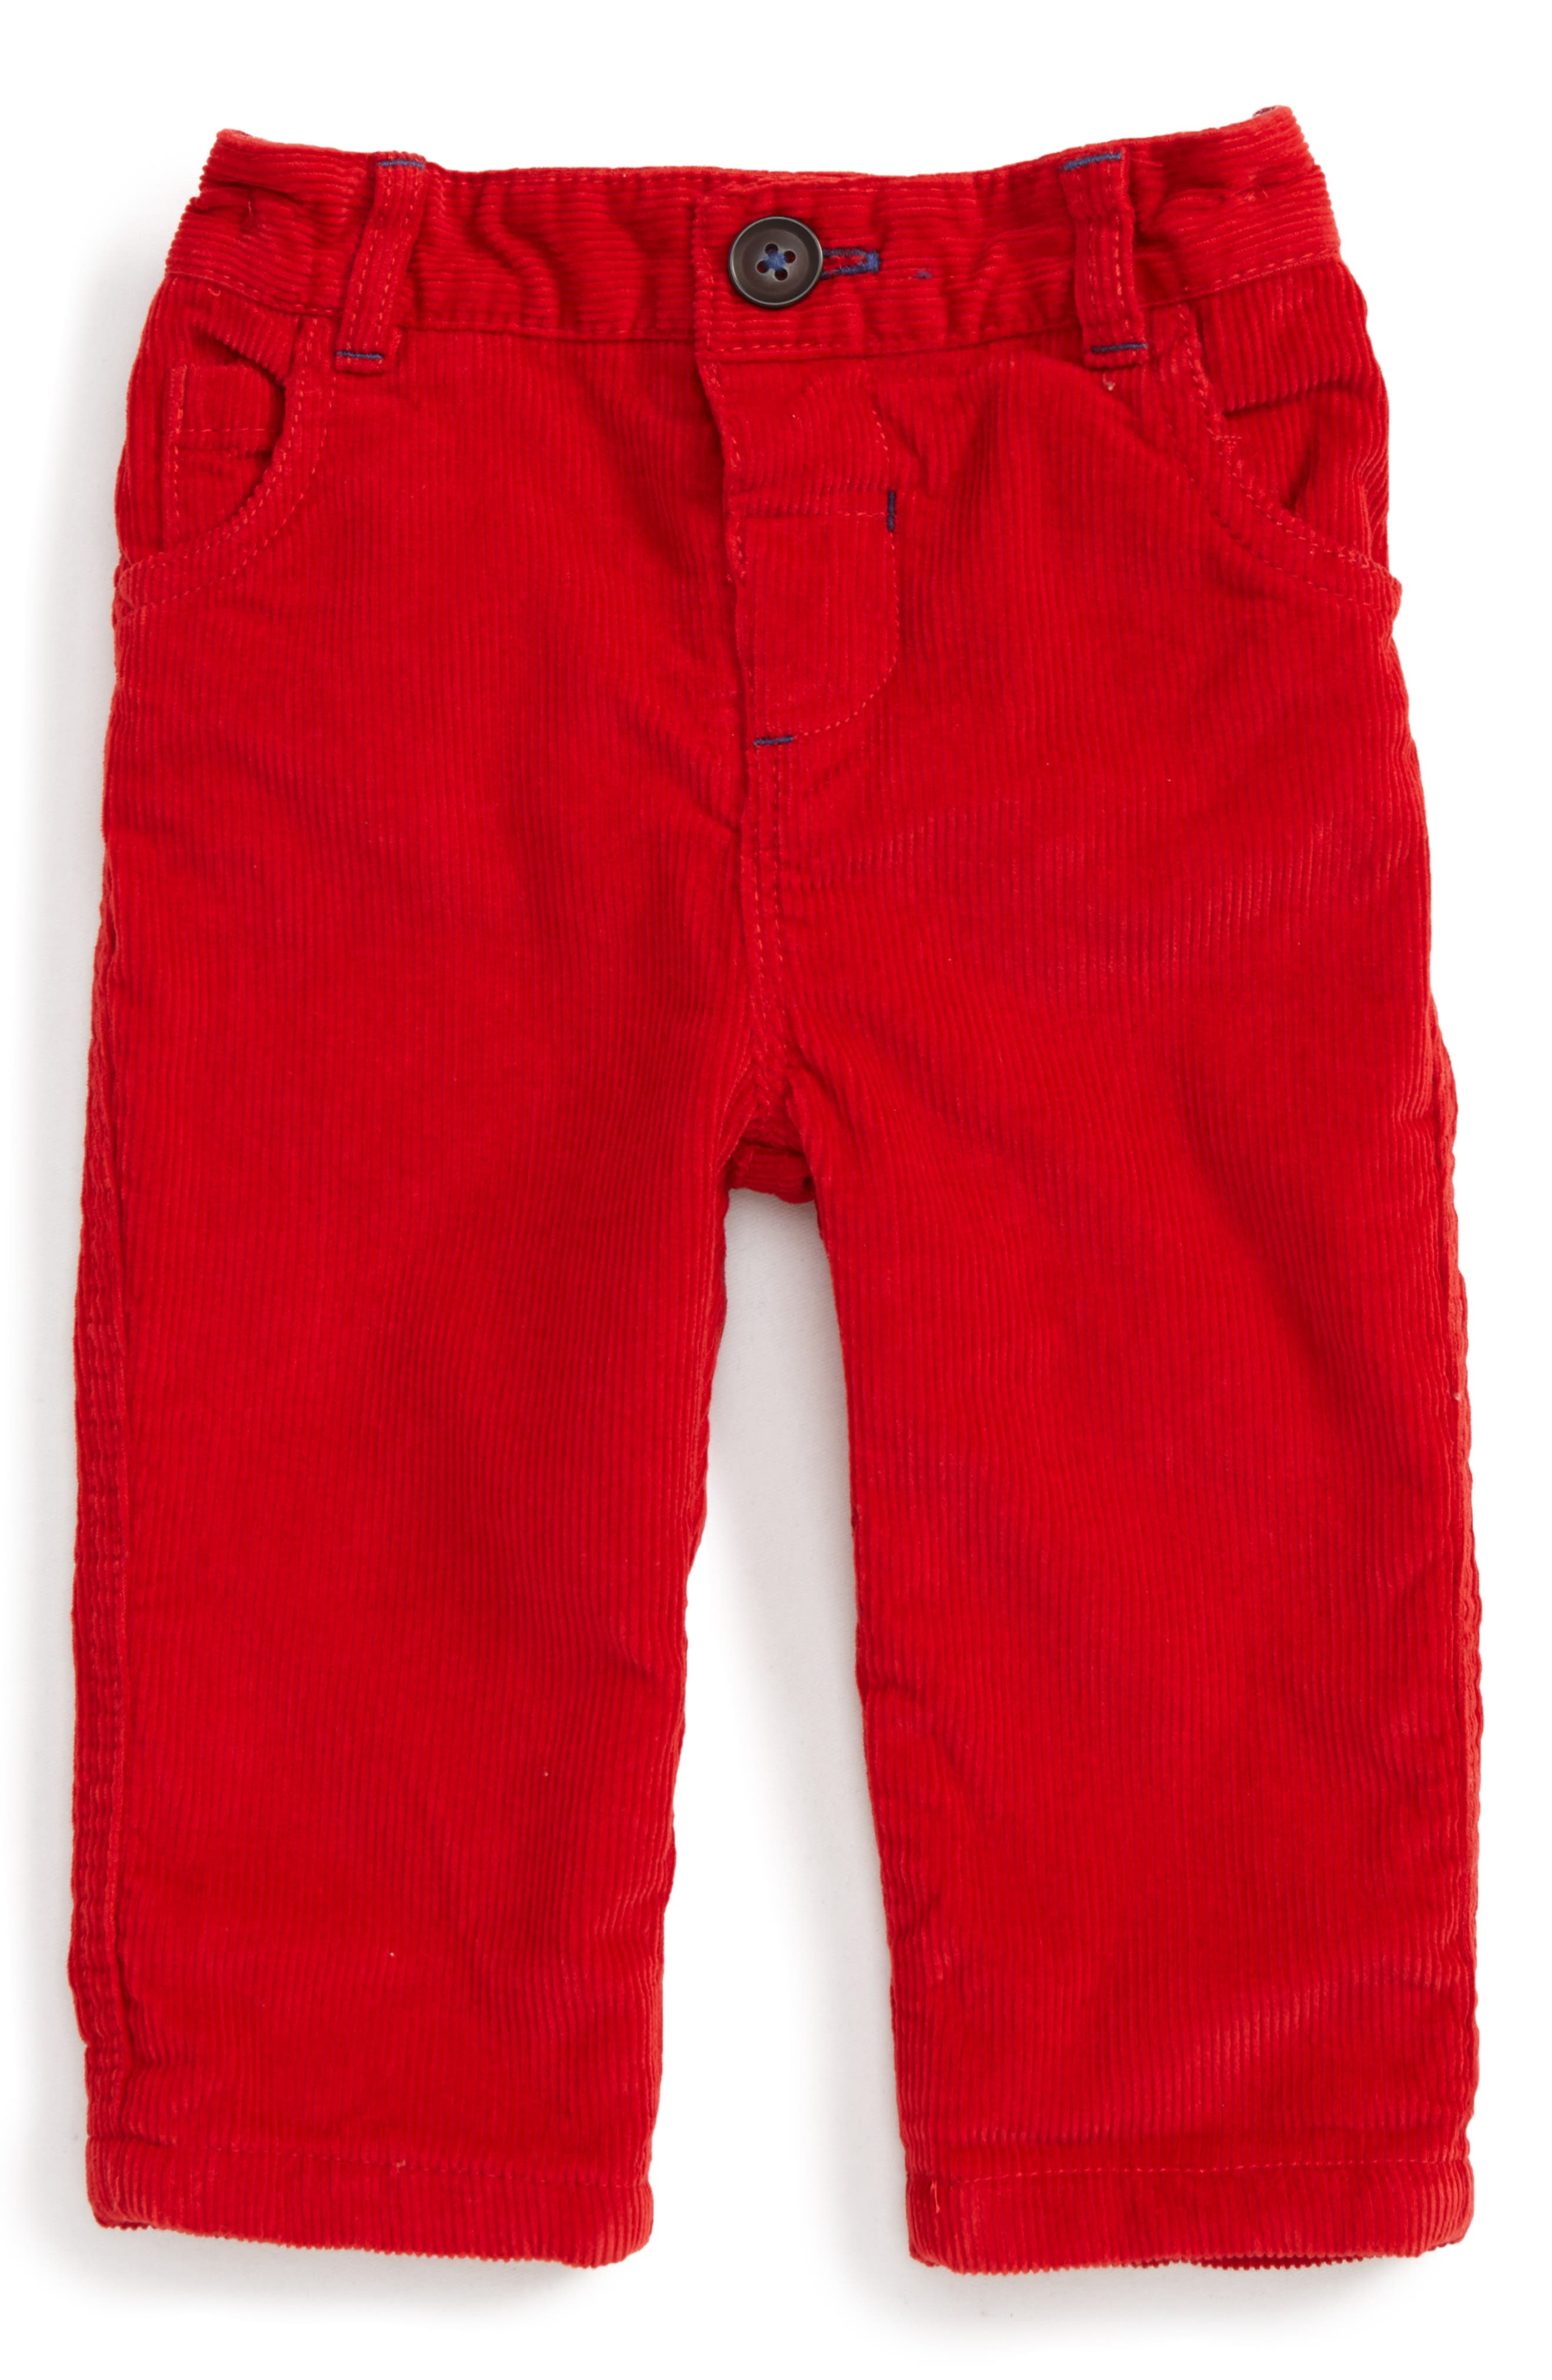 Lined Corduroy Pants,                         Main,                         color, Red Engine Red